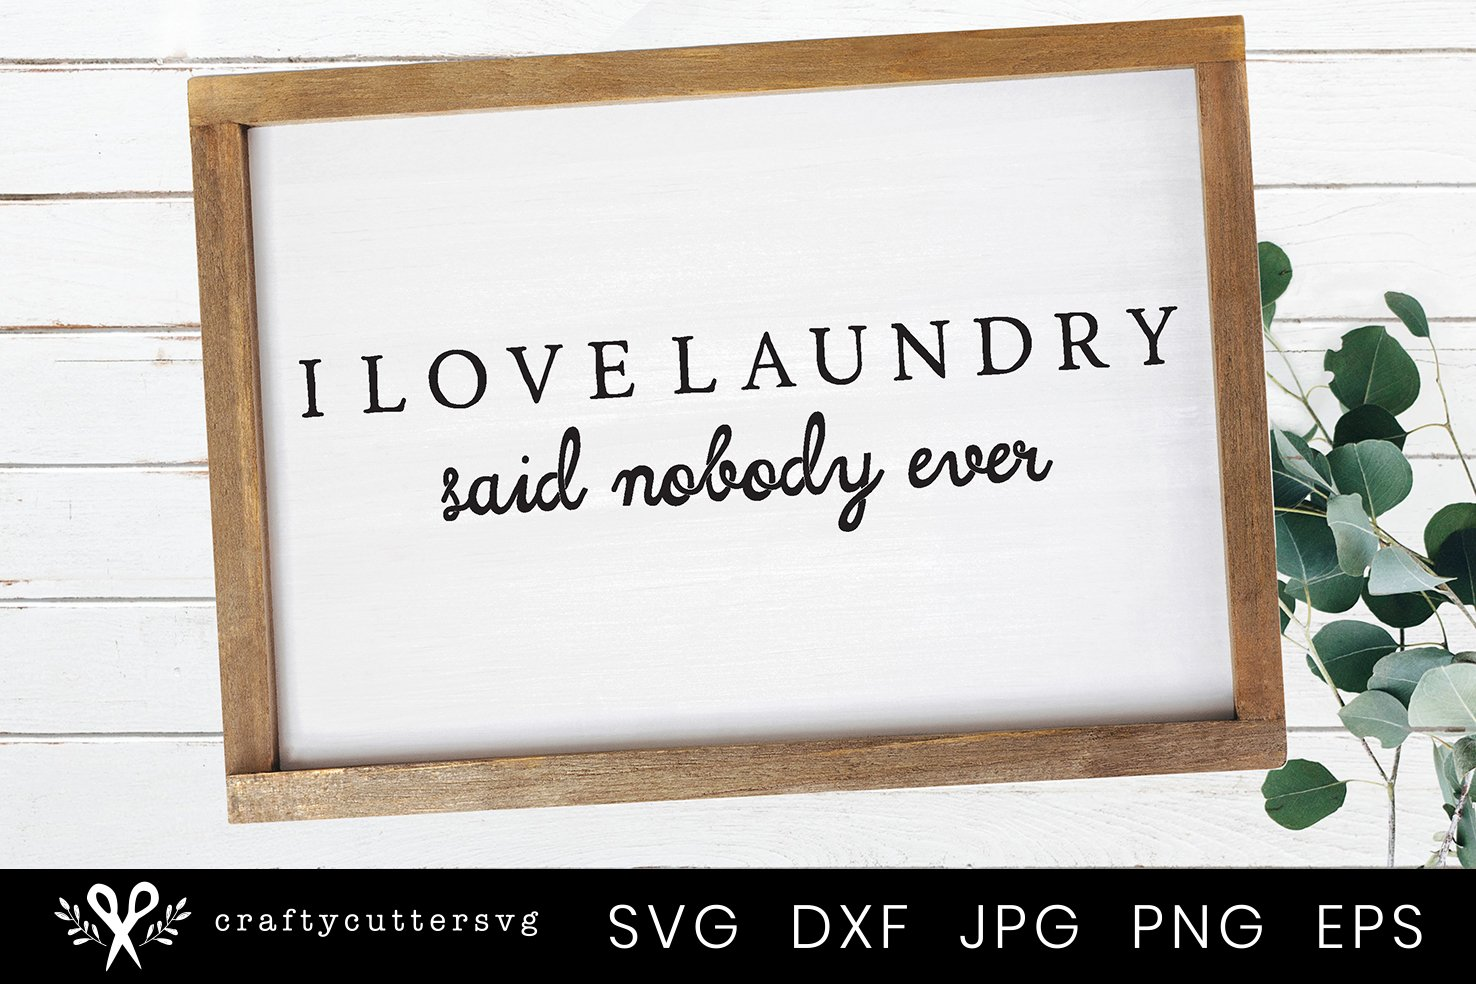 I love Laundry | Farmhouse Laundry Room Sign SVG example image 1